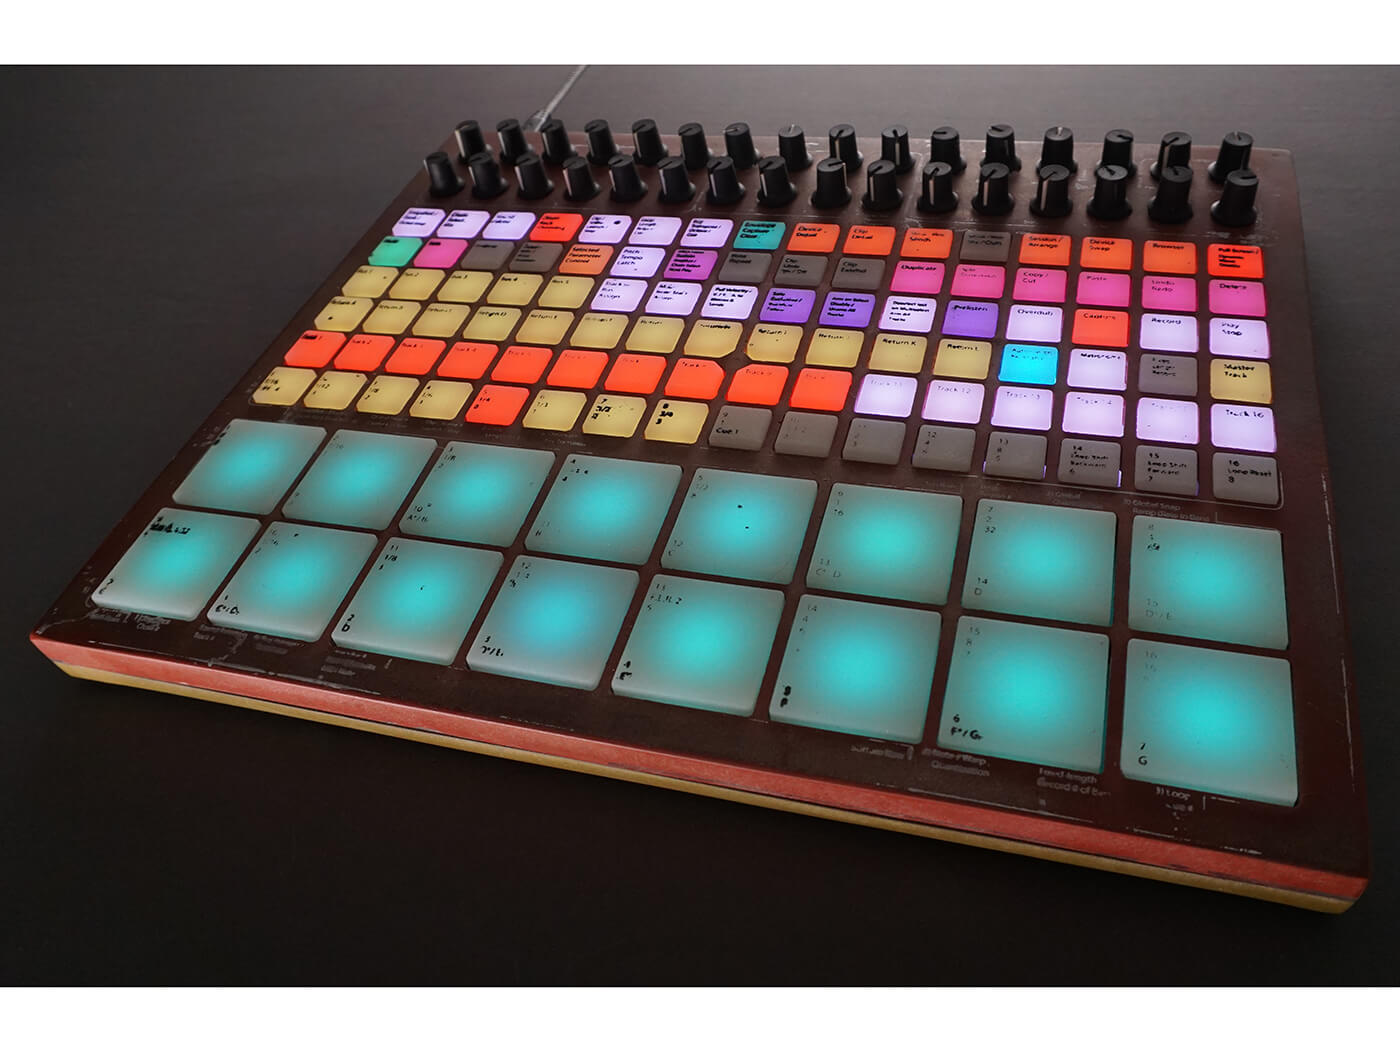 Envision Sound to launch Kickstarter for Strata controller next month